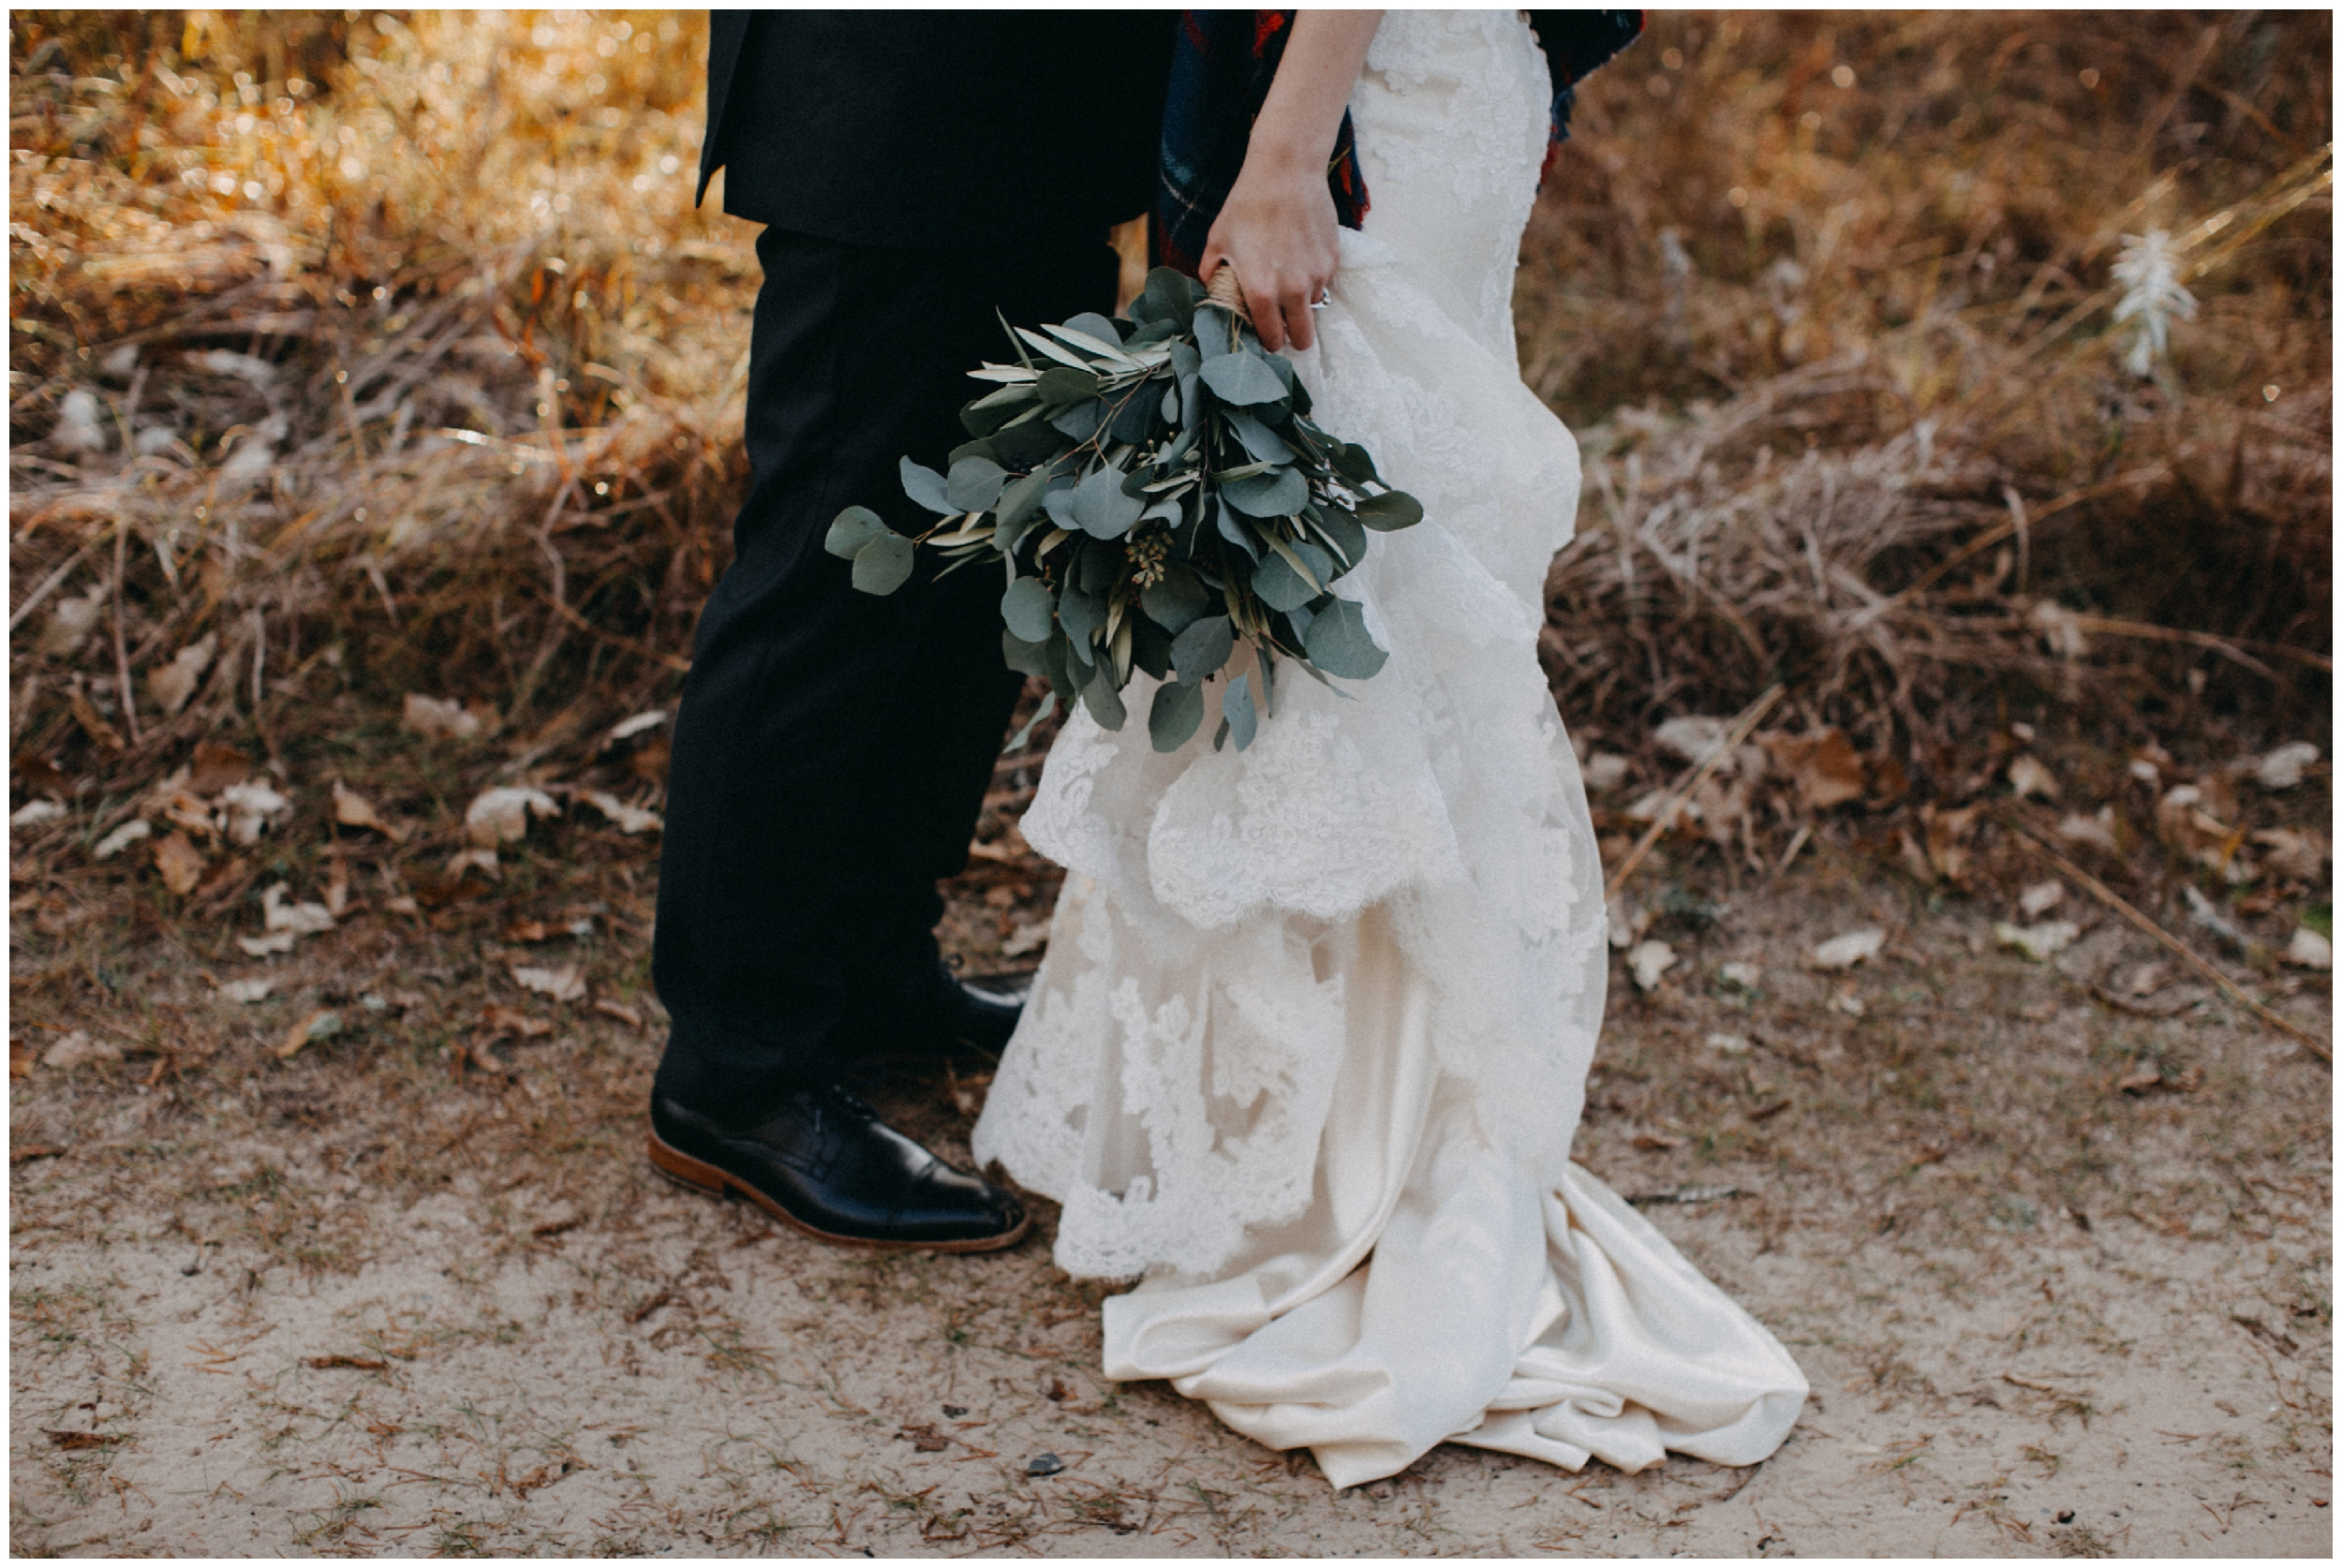 Simple and romantic wedding details at the Northland Arboretum in Brainerd Minnesota